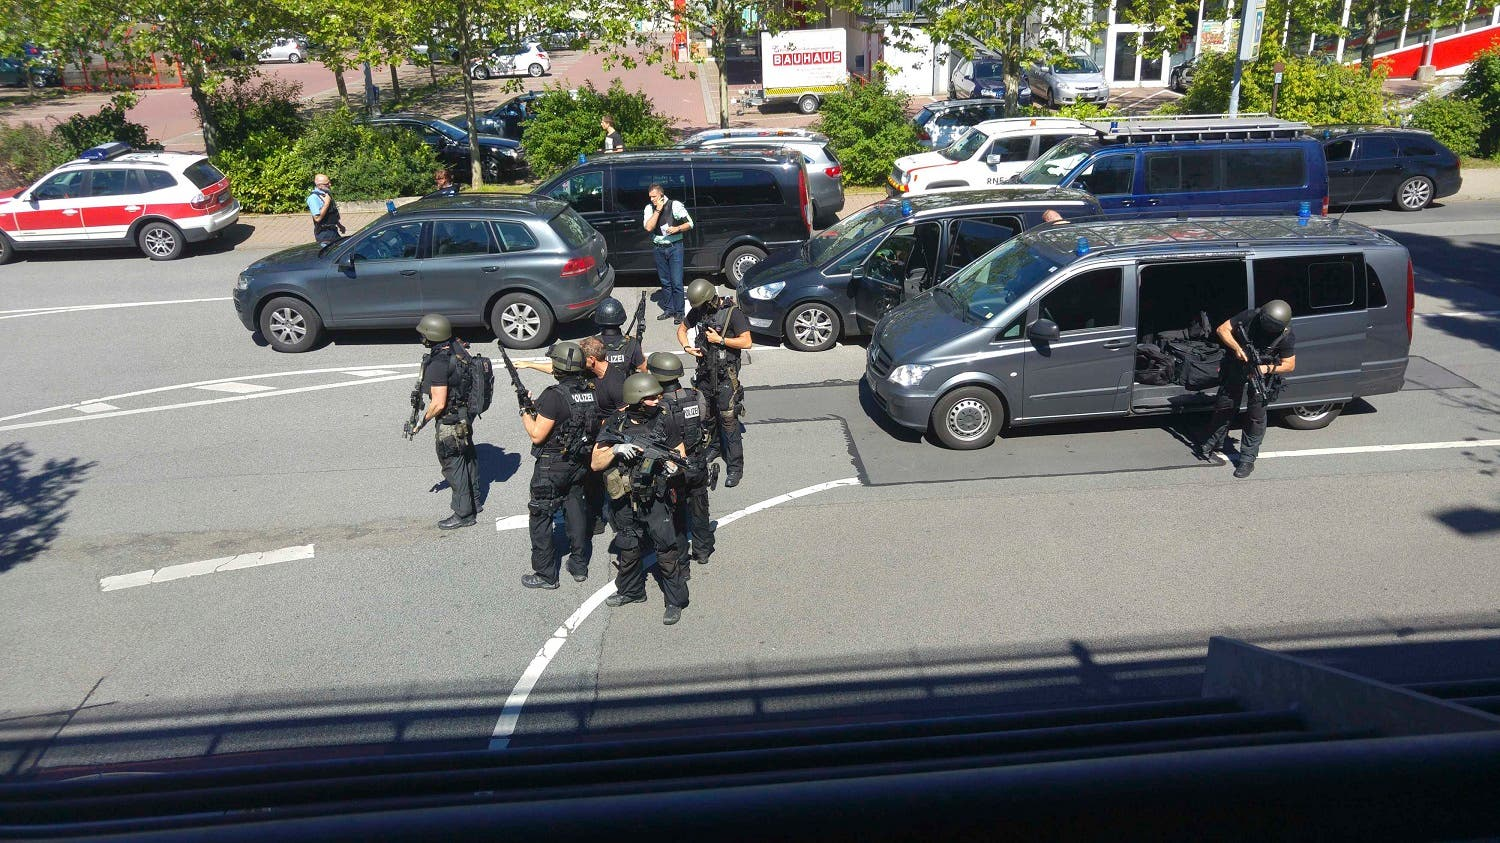 German special police leave their cars after a masked man with a gun and ammunition belt opened fire in a cinema complex in the small western town of Viernheim, near Frankfurt, Germany, June 23, 2016. REUTERS/Handout/Rhein-Neckar-Fernsehen